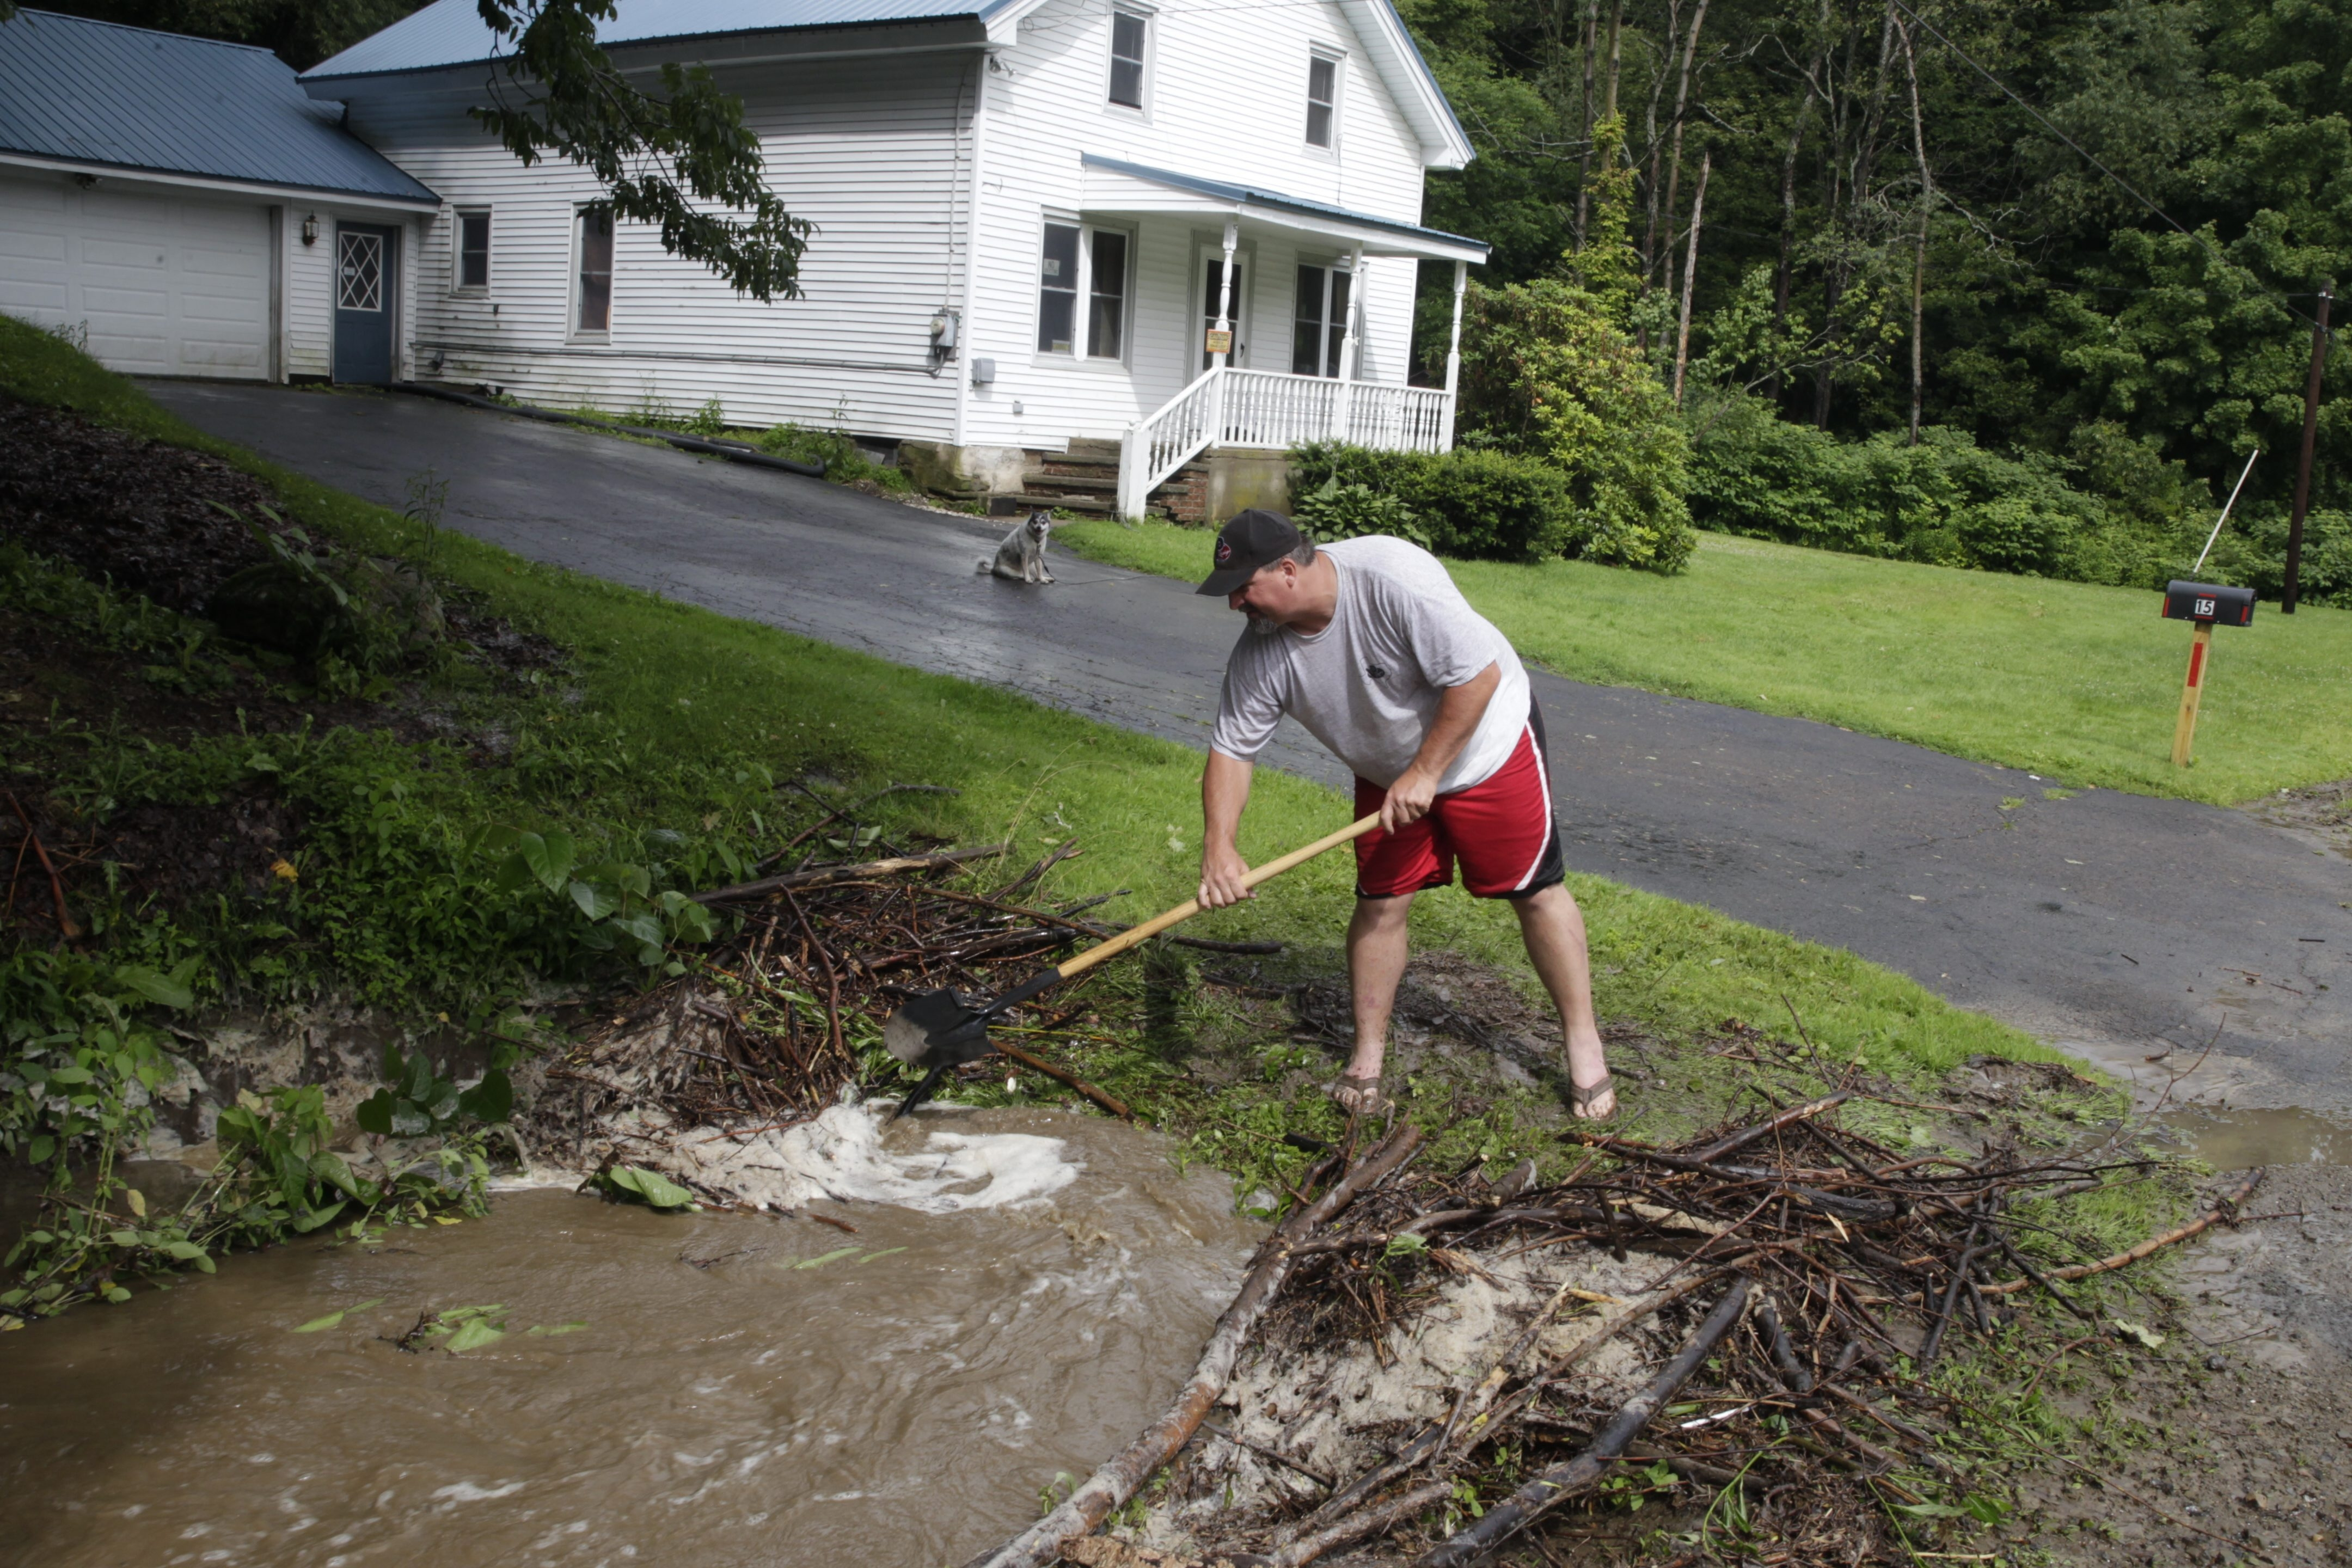 Help is available to residents who suffered damage in this week's flooding, which affected Chris Mierzwa, shown cleaning out a culvert on Frisbee Road after debris blocked it and inundated the road Tuesday in Cassadaga.